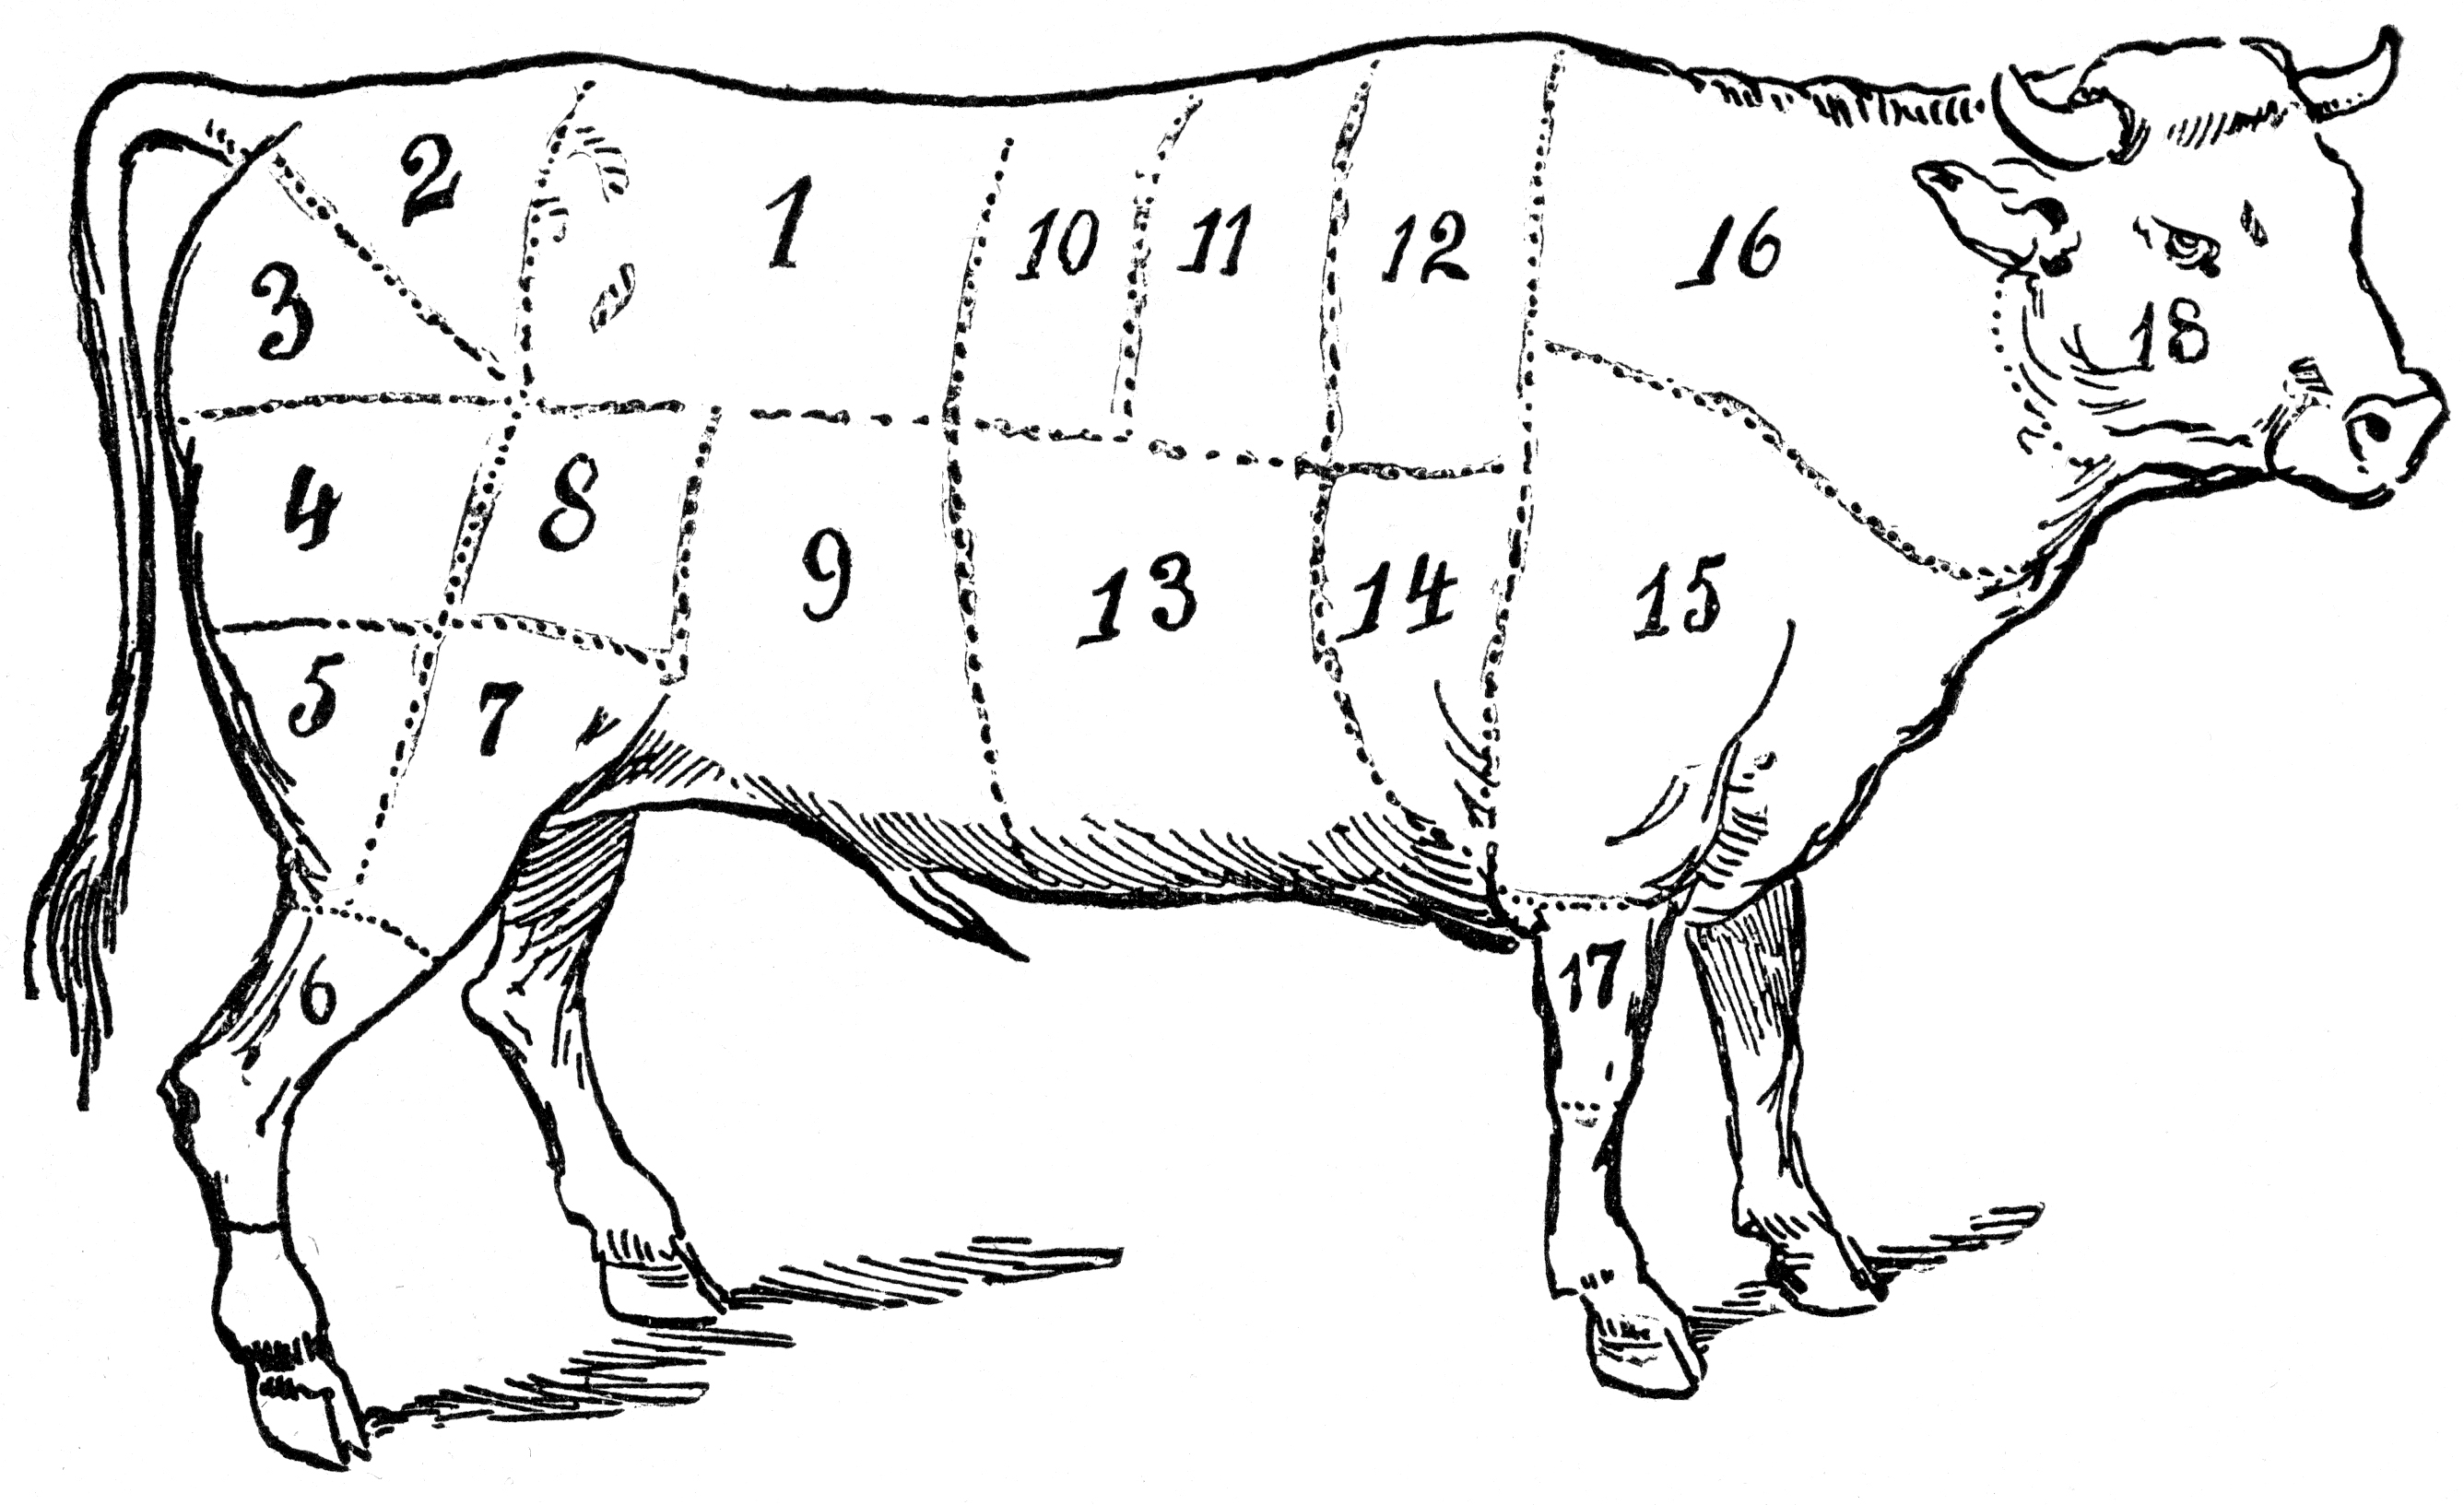 Butcher Diagram S - Wiring Diagram